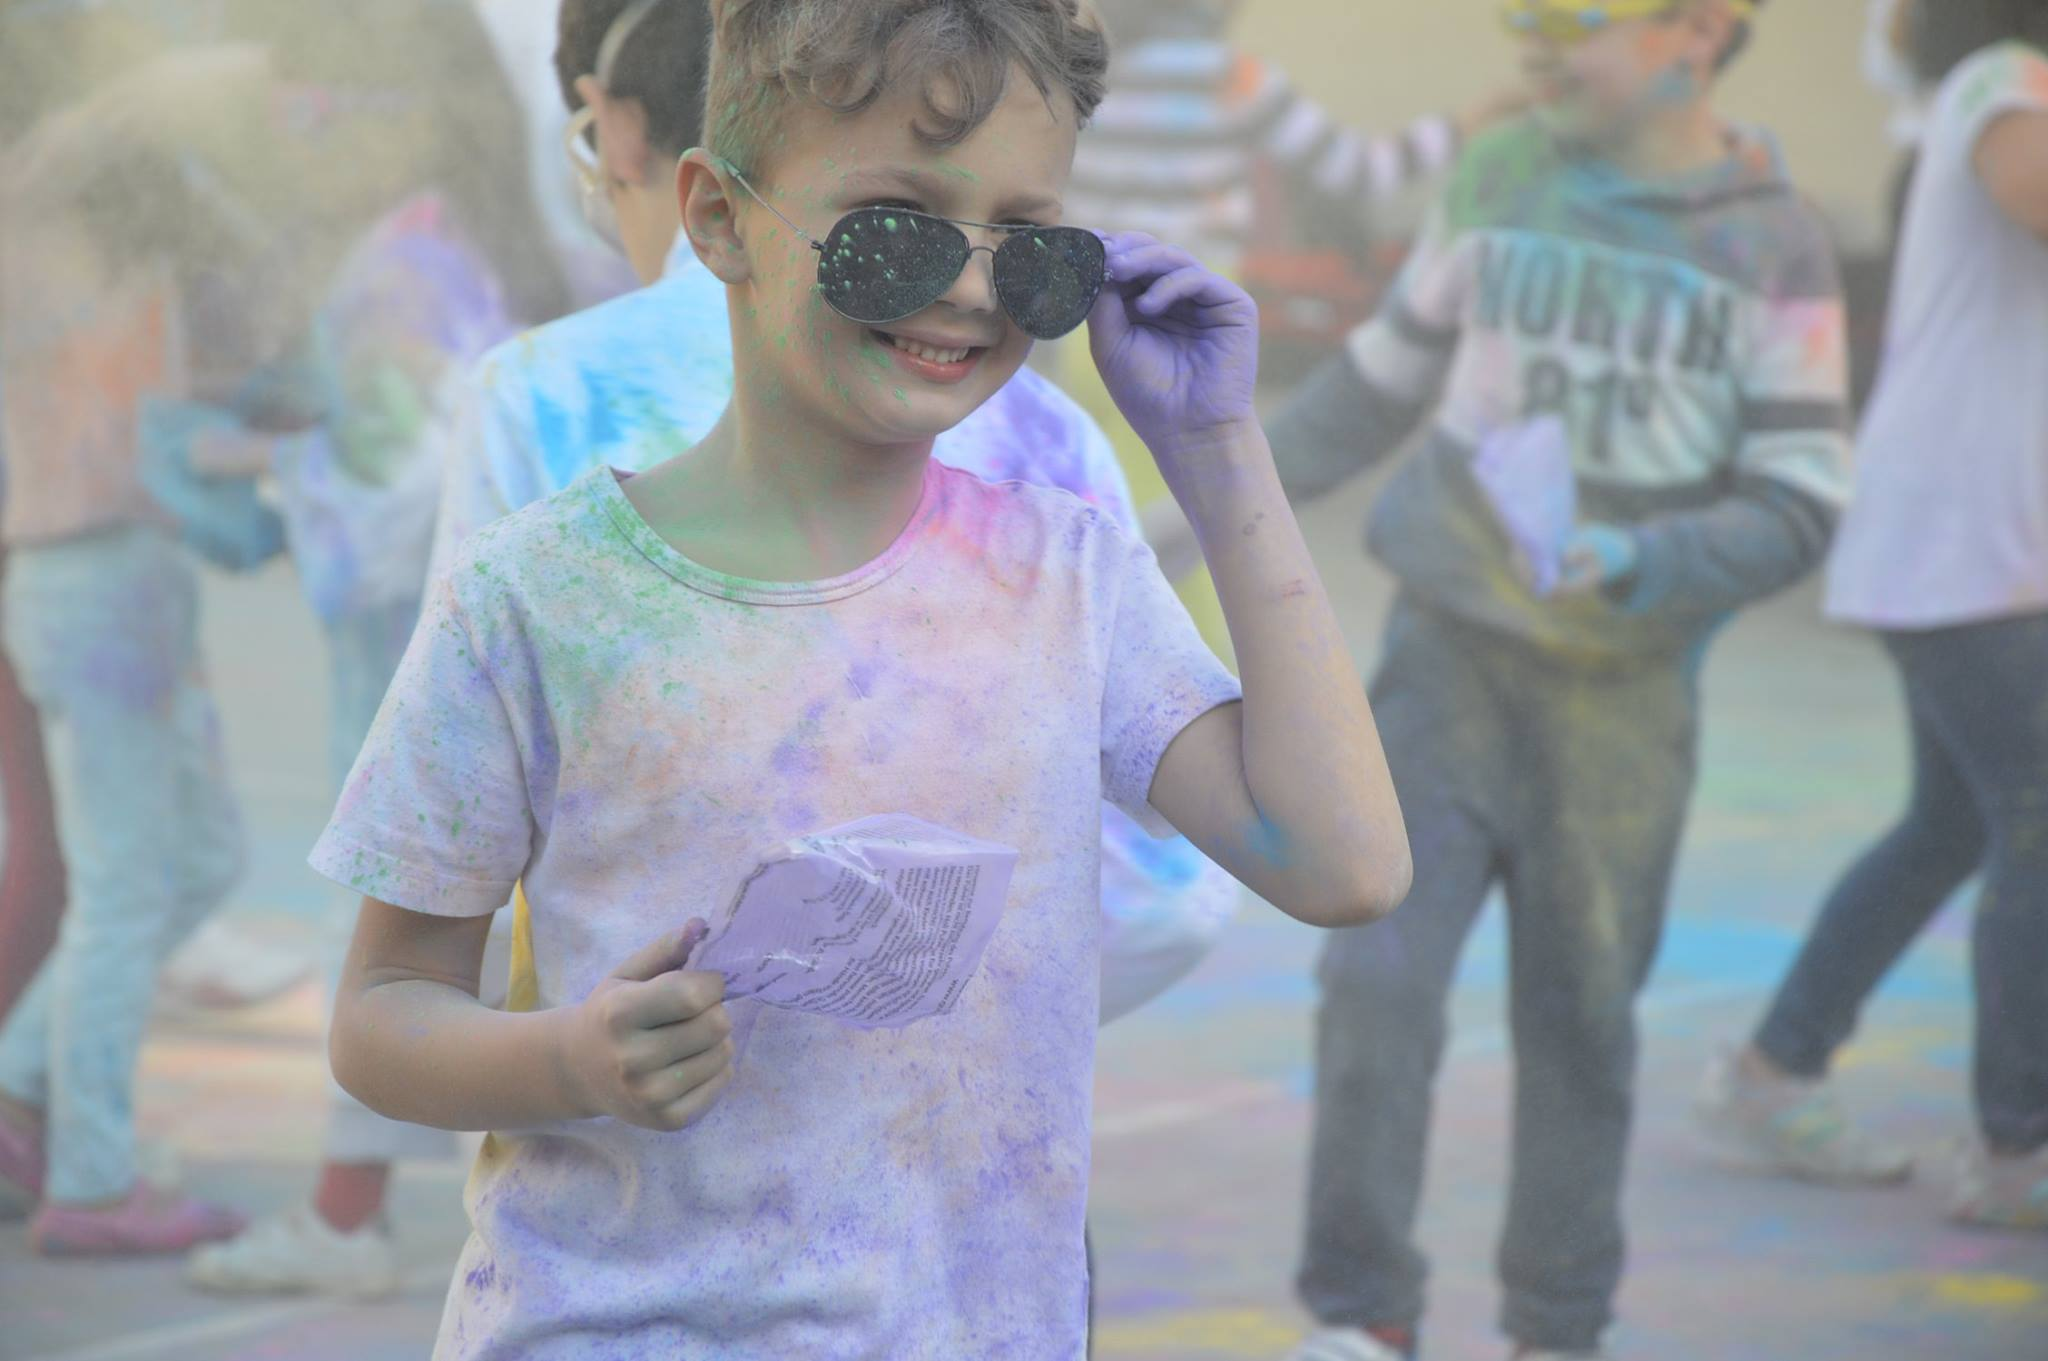 C2 celebrated the Holi Festival related to their PBL topic on World Festivals